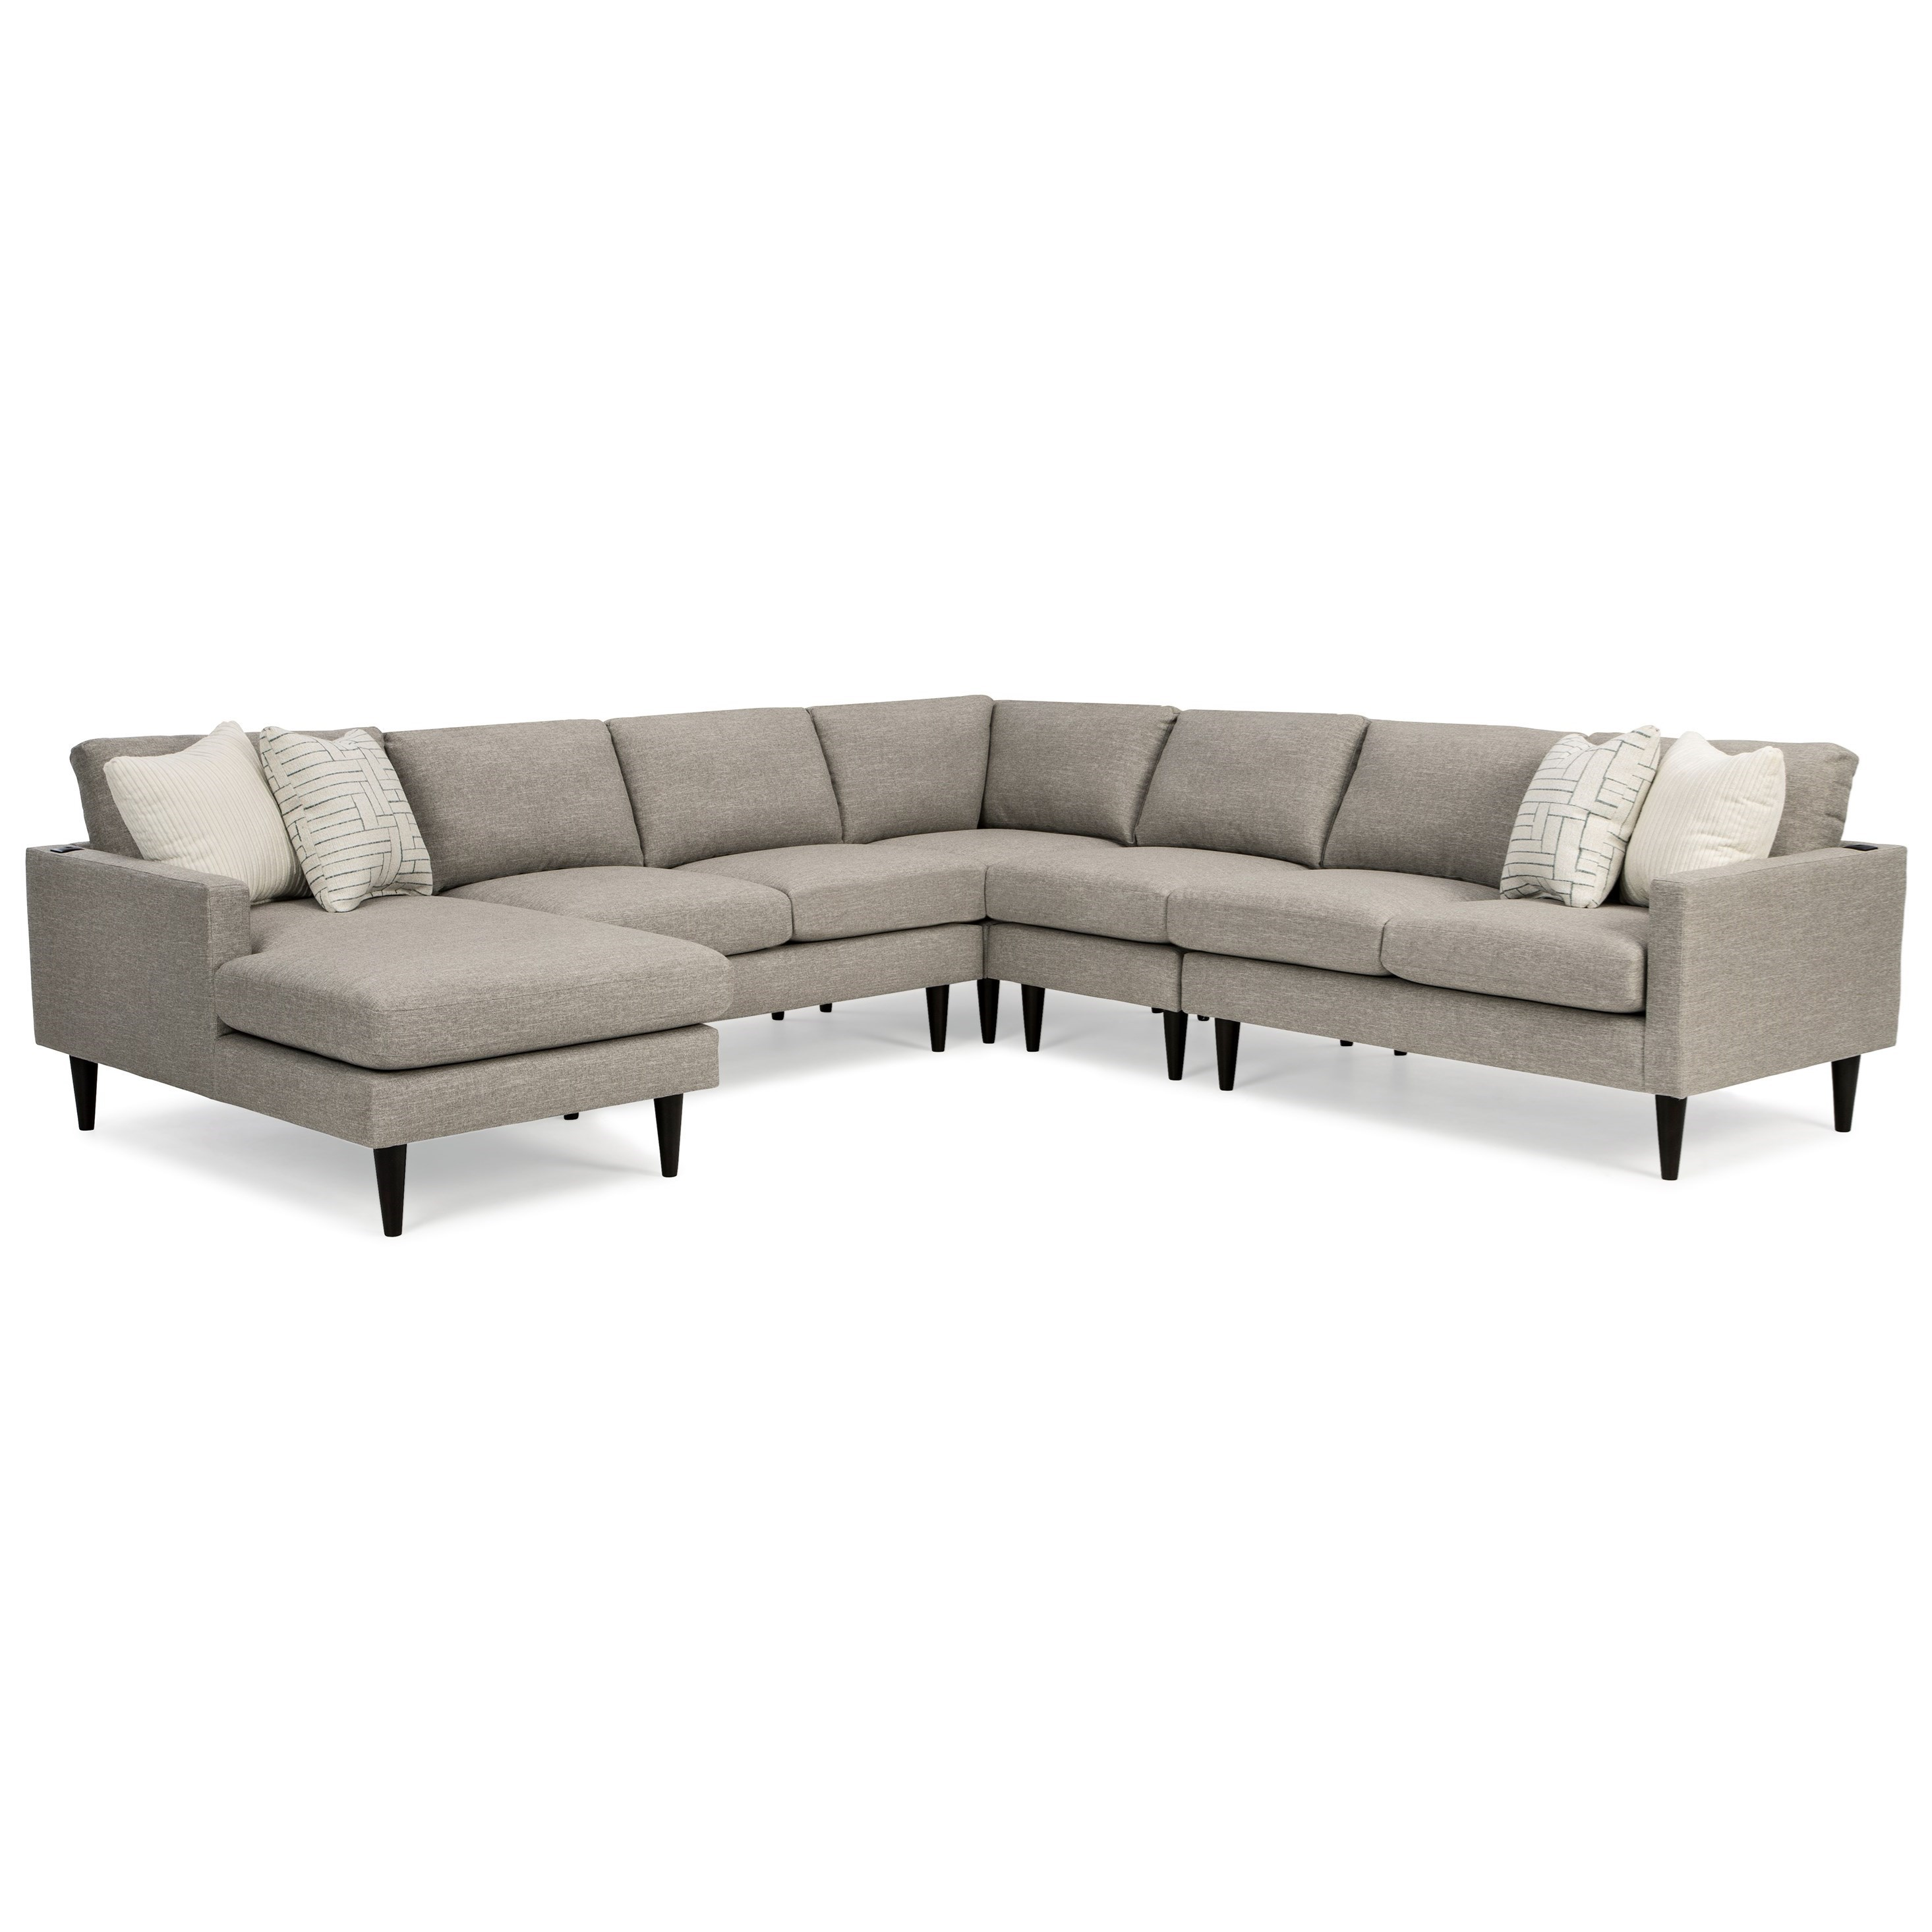 Trafton 6-Seat Sectional Sofa w/ LAF Chaise by Best Home Furnishings at Baer's Furniture